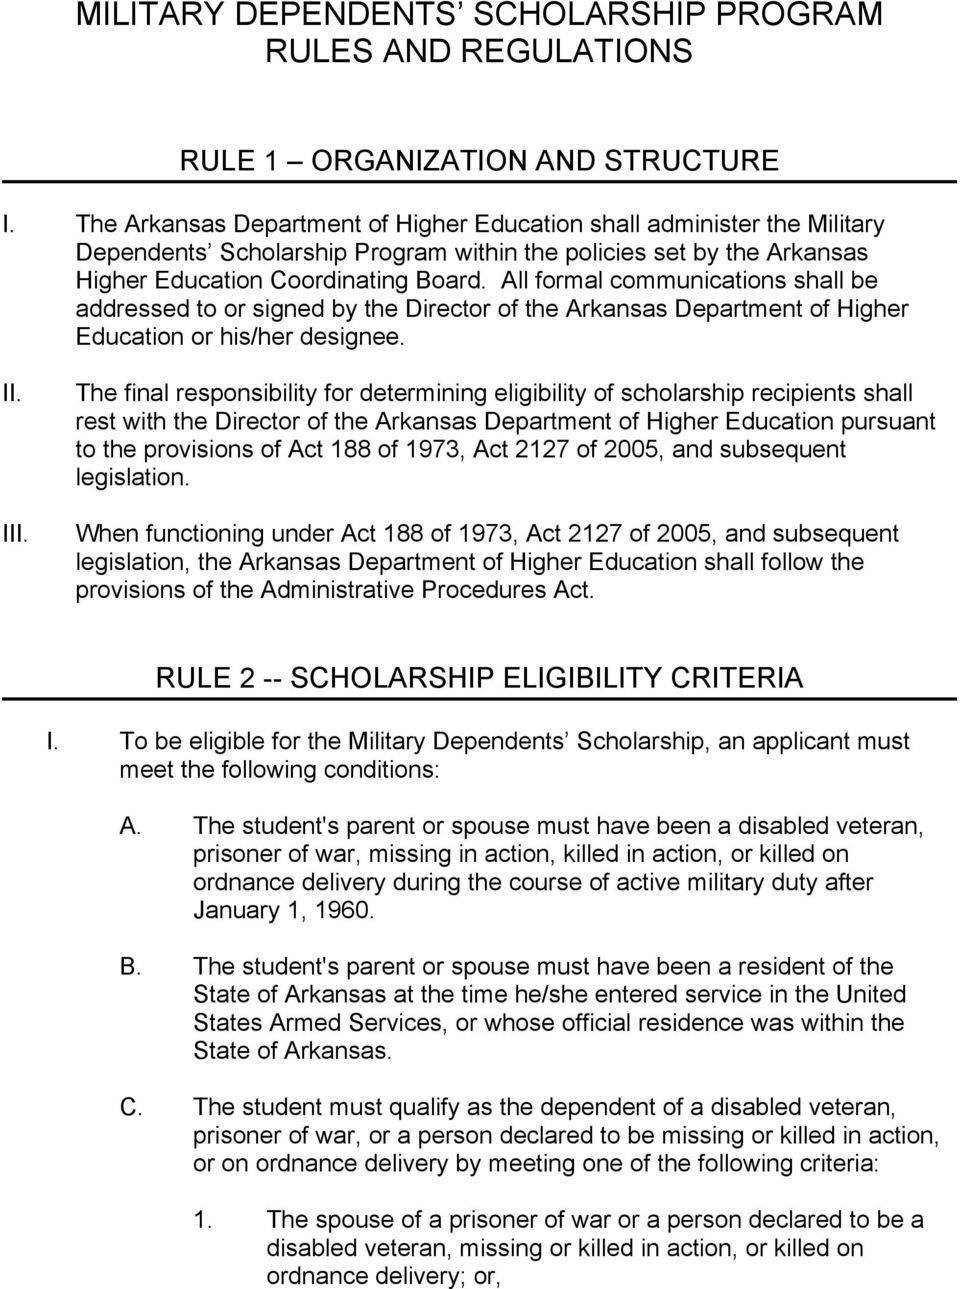 All formal communications shall be addressed to or signed by the Director of the Arkansas Department of Higher Education or his/her designee.